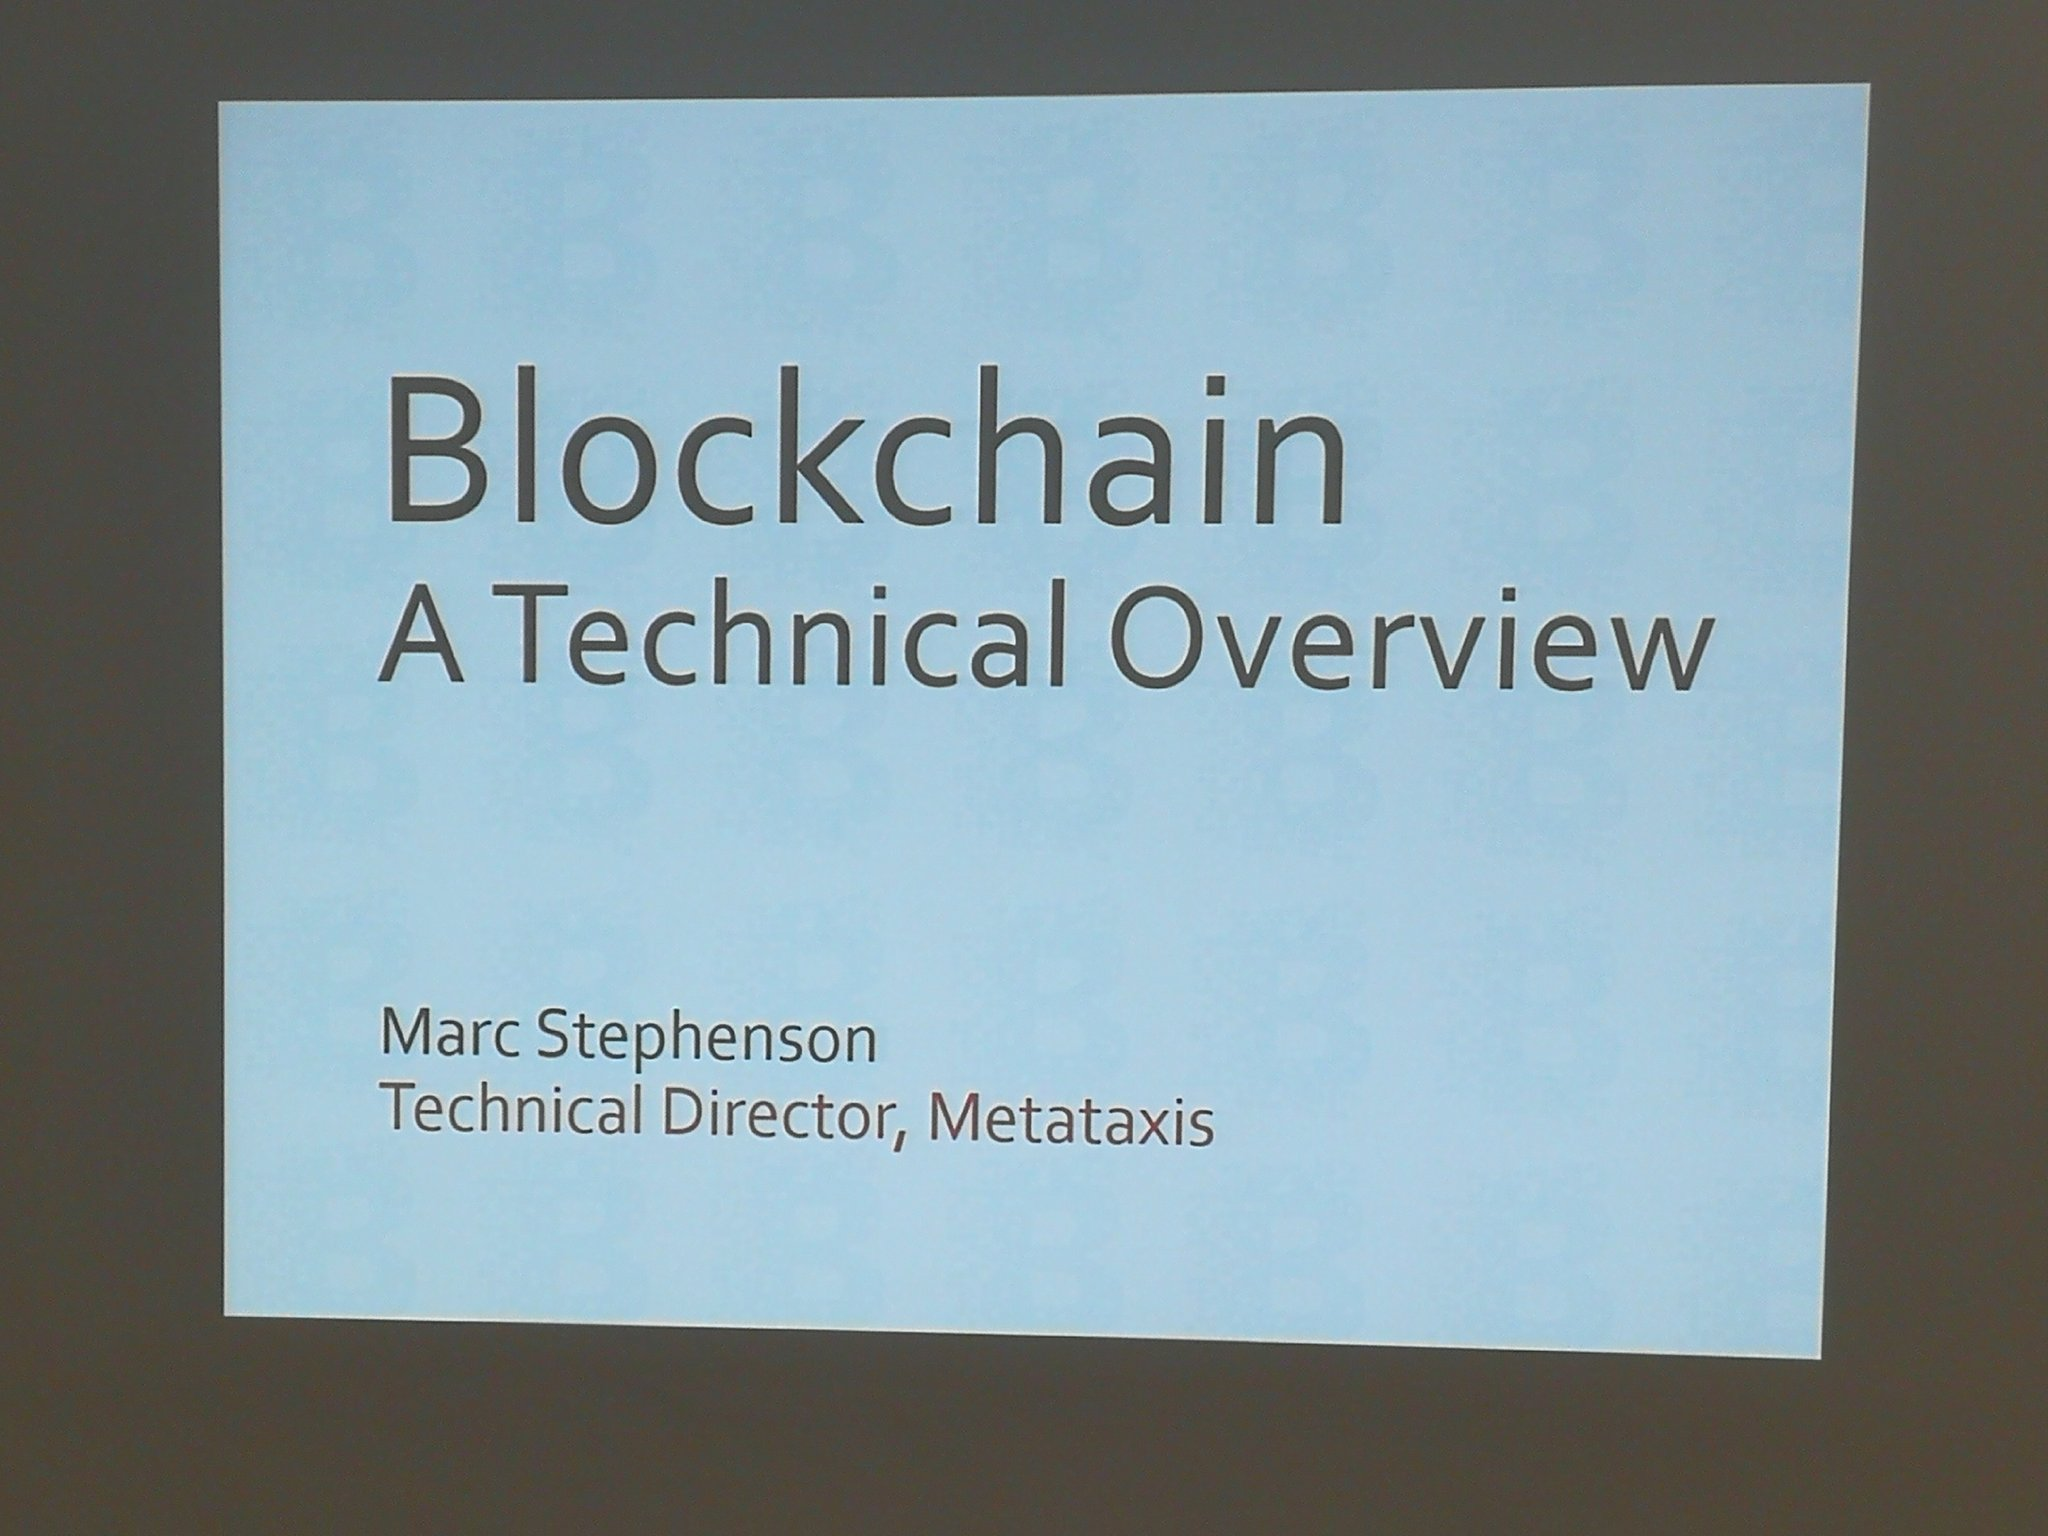 About to kick off a packed session on #blockchain #netikx86 https://t.co/W8knxBqyYo